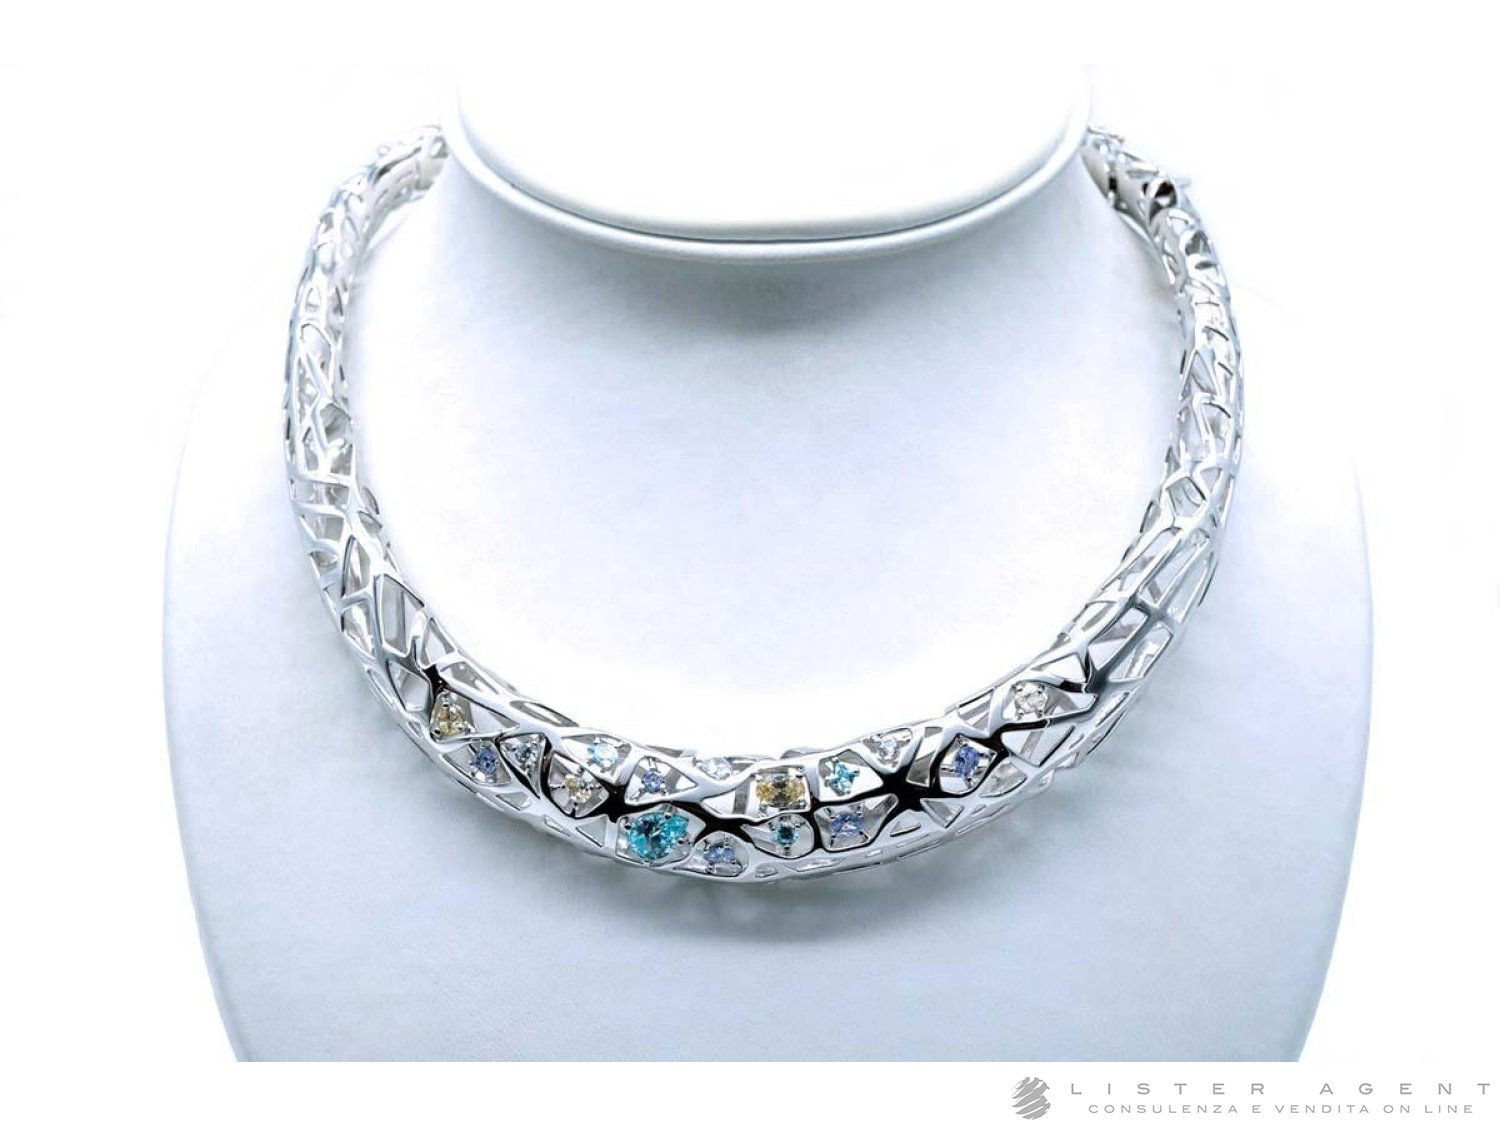 PIANEGONDA Nexum necklace in 925 silver and colored zircons Ref. PNX02. NEW! price and features